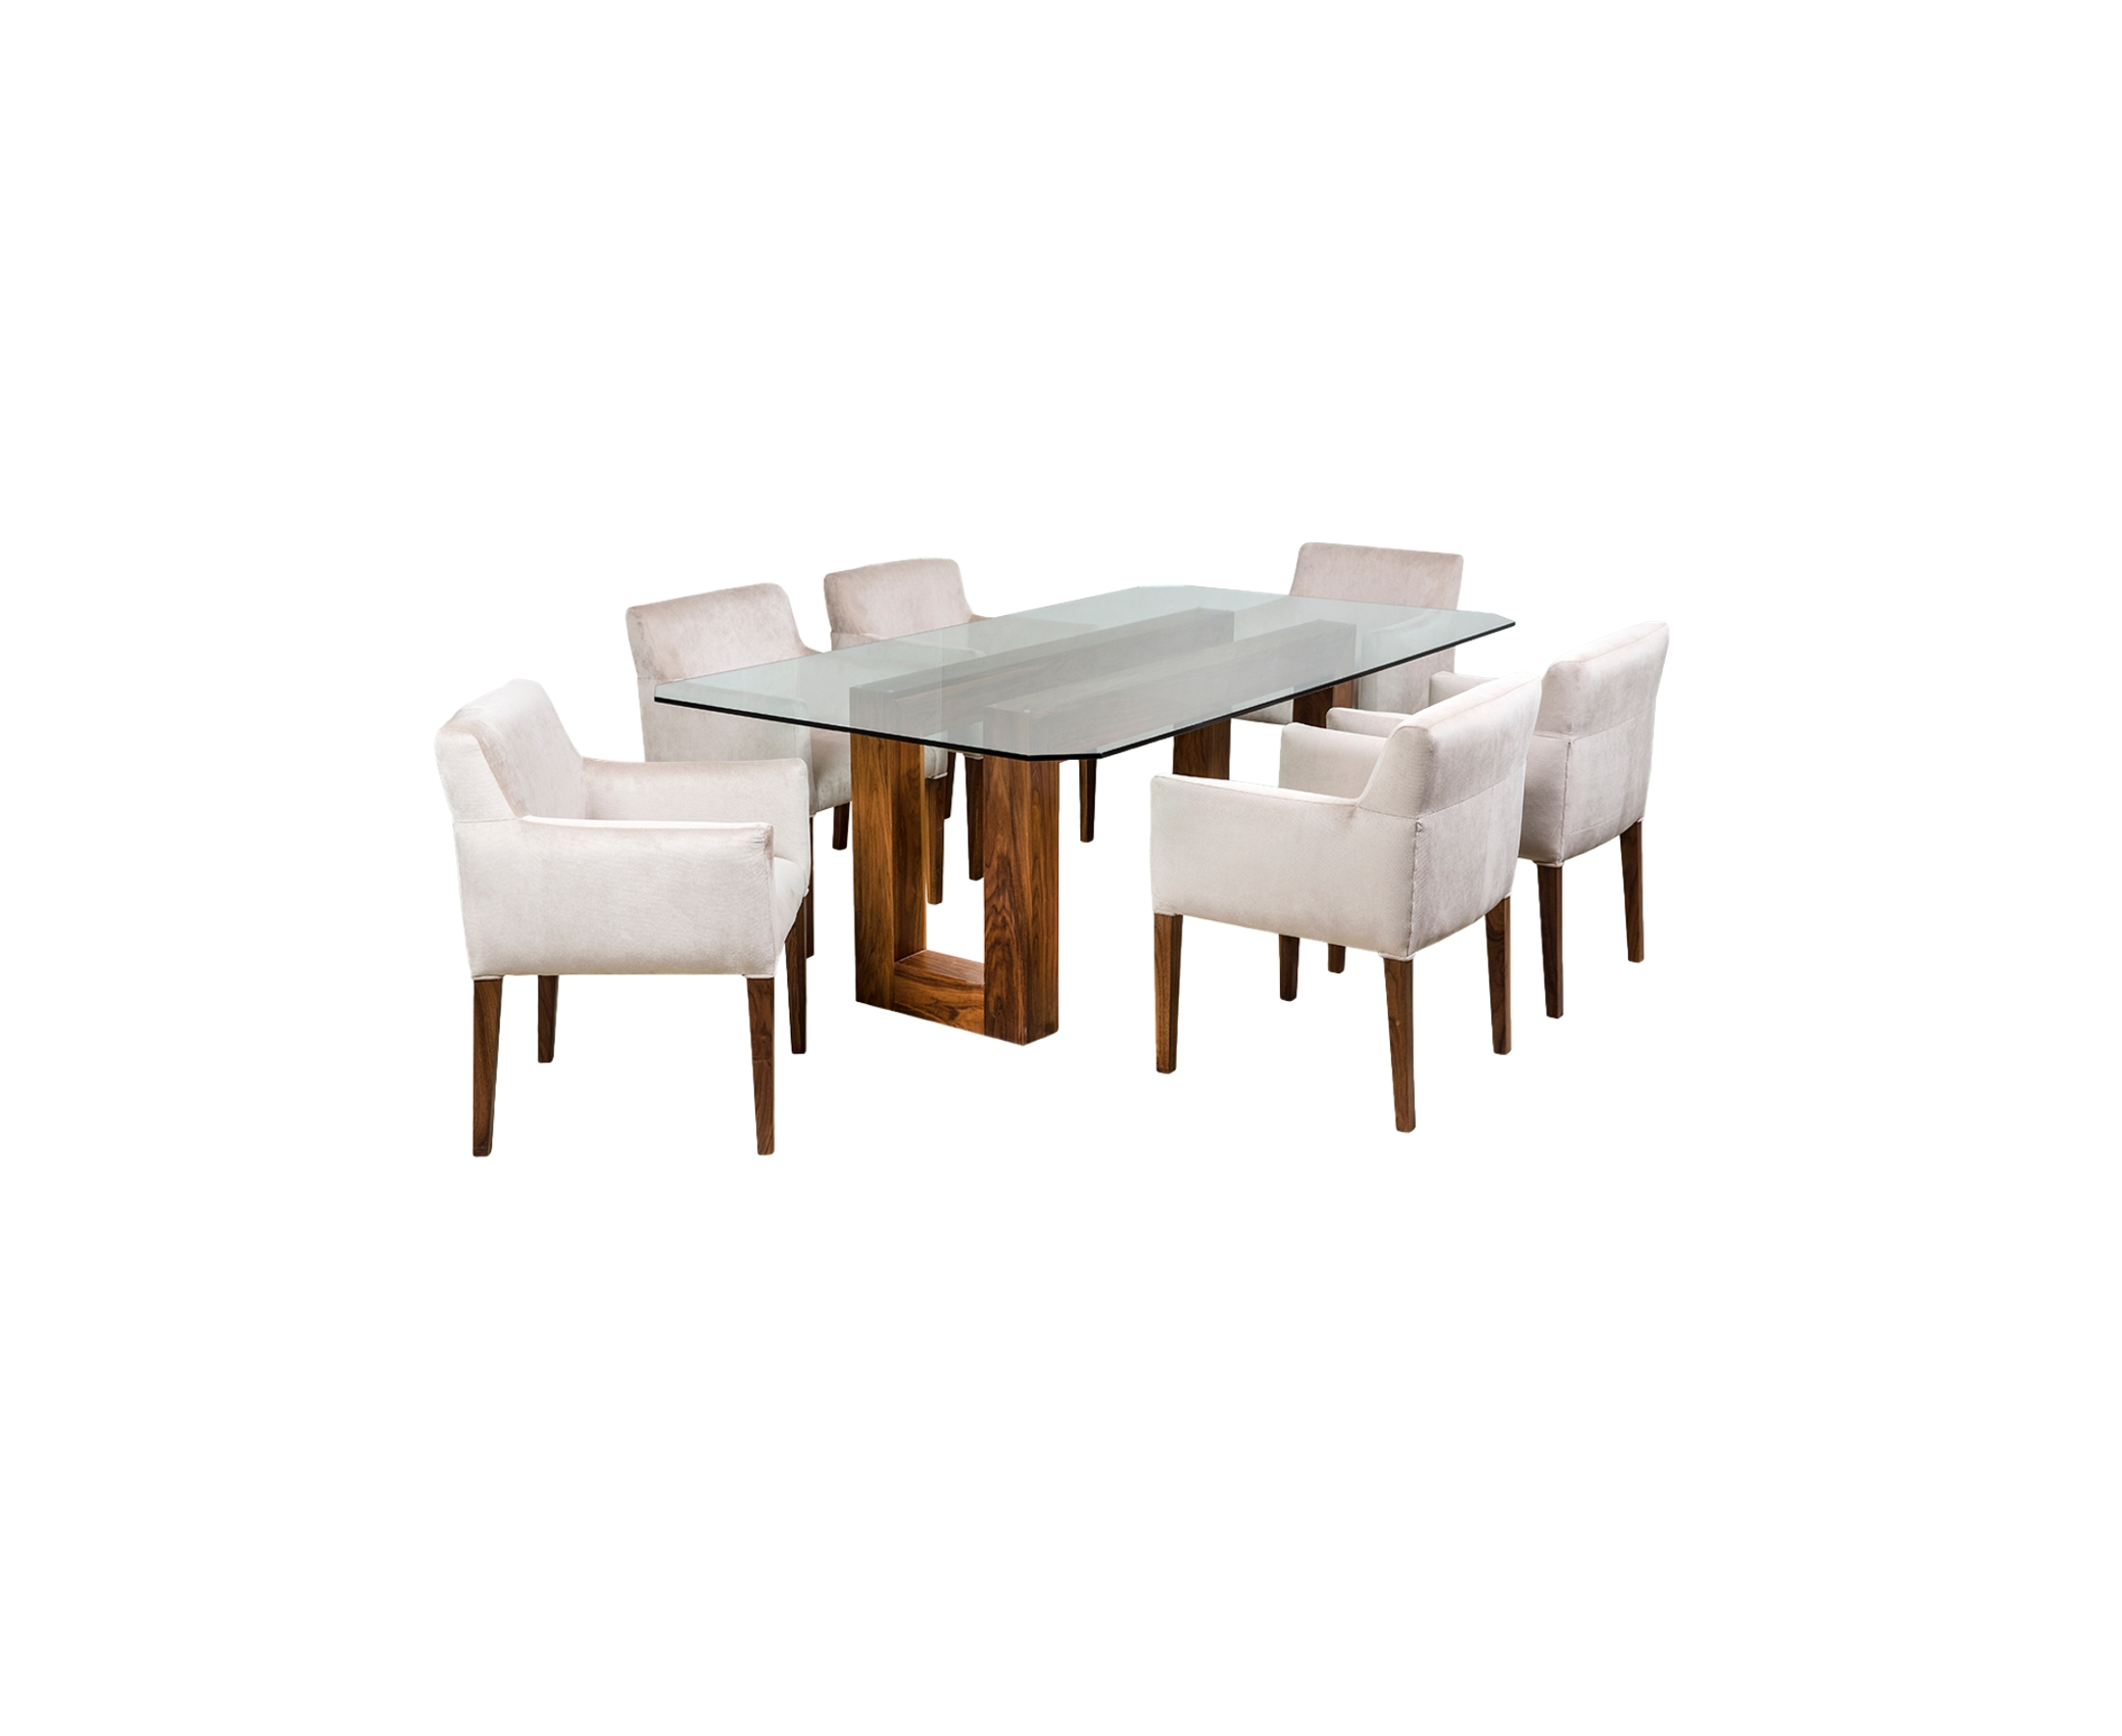 Karolina table & chairs